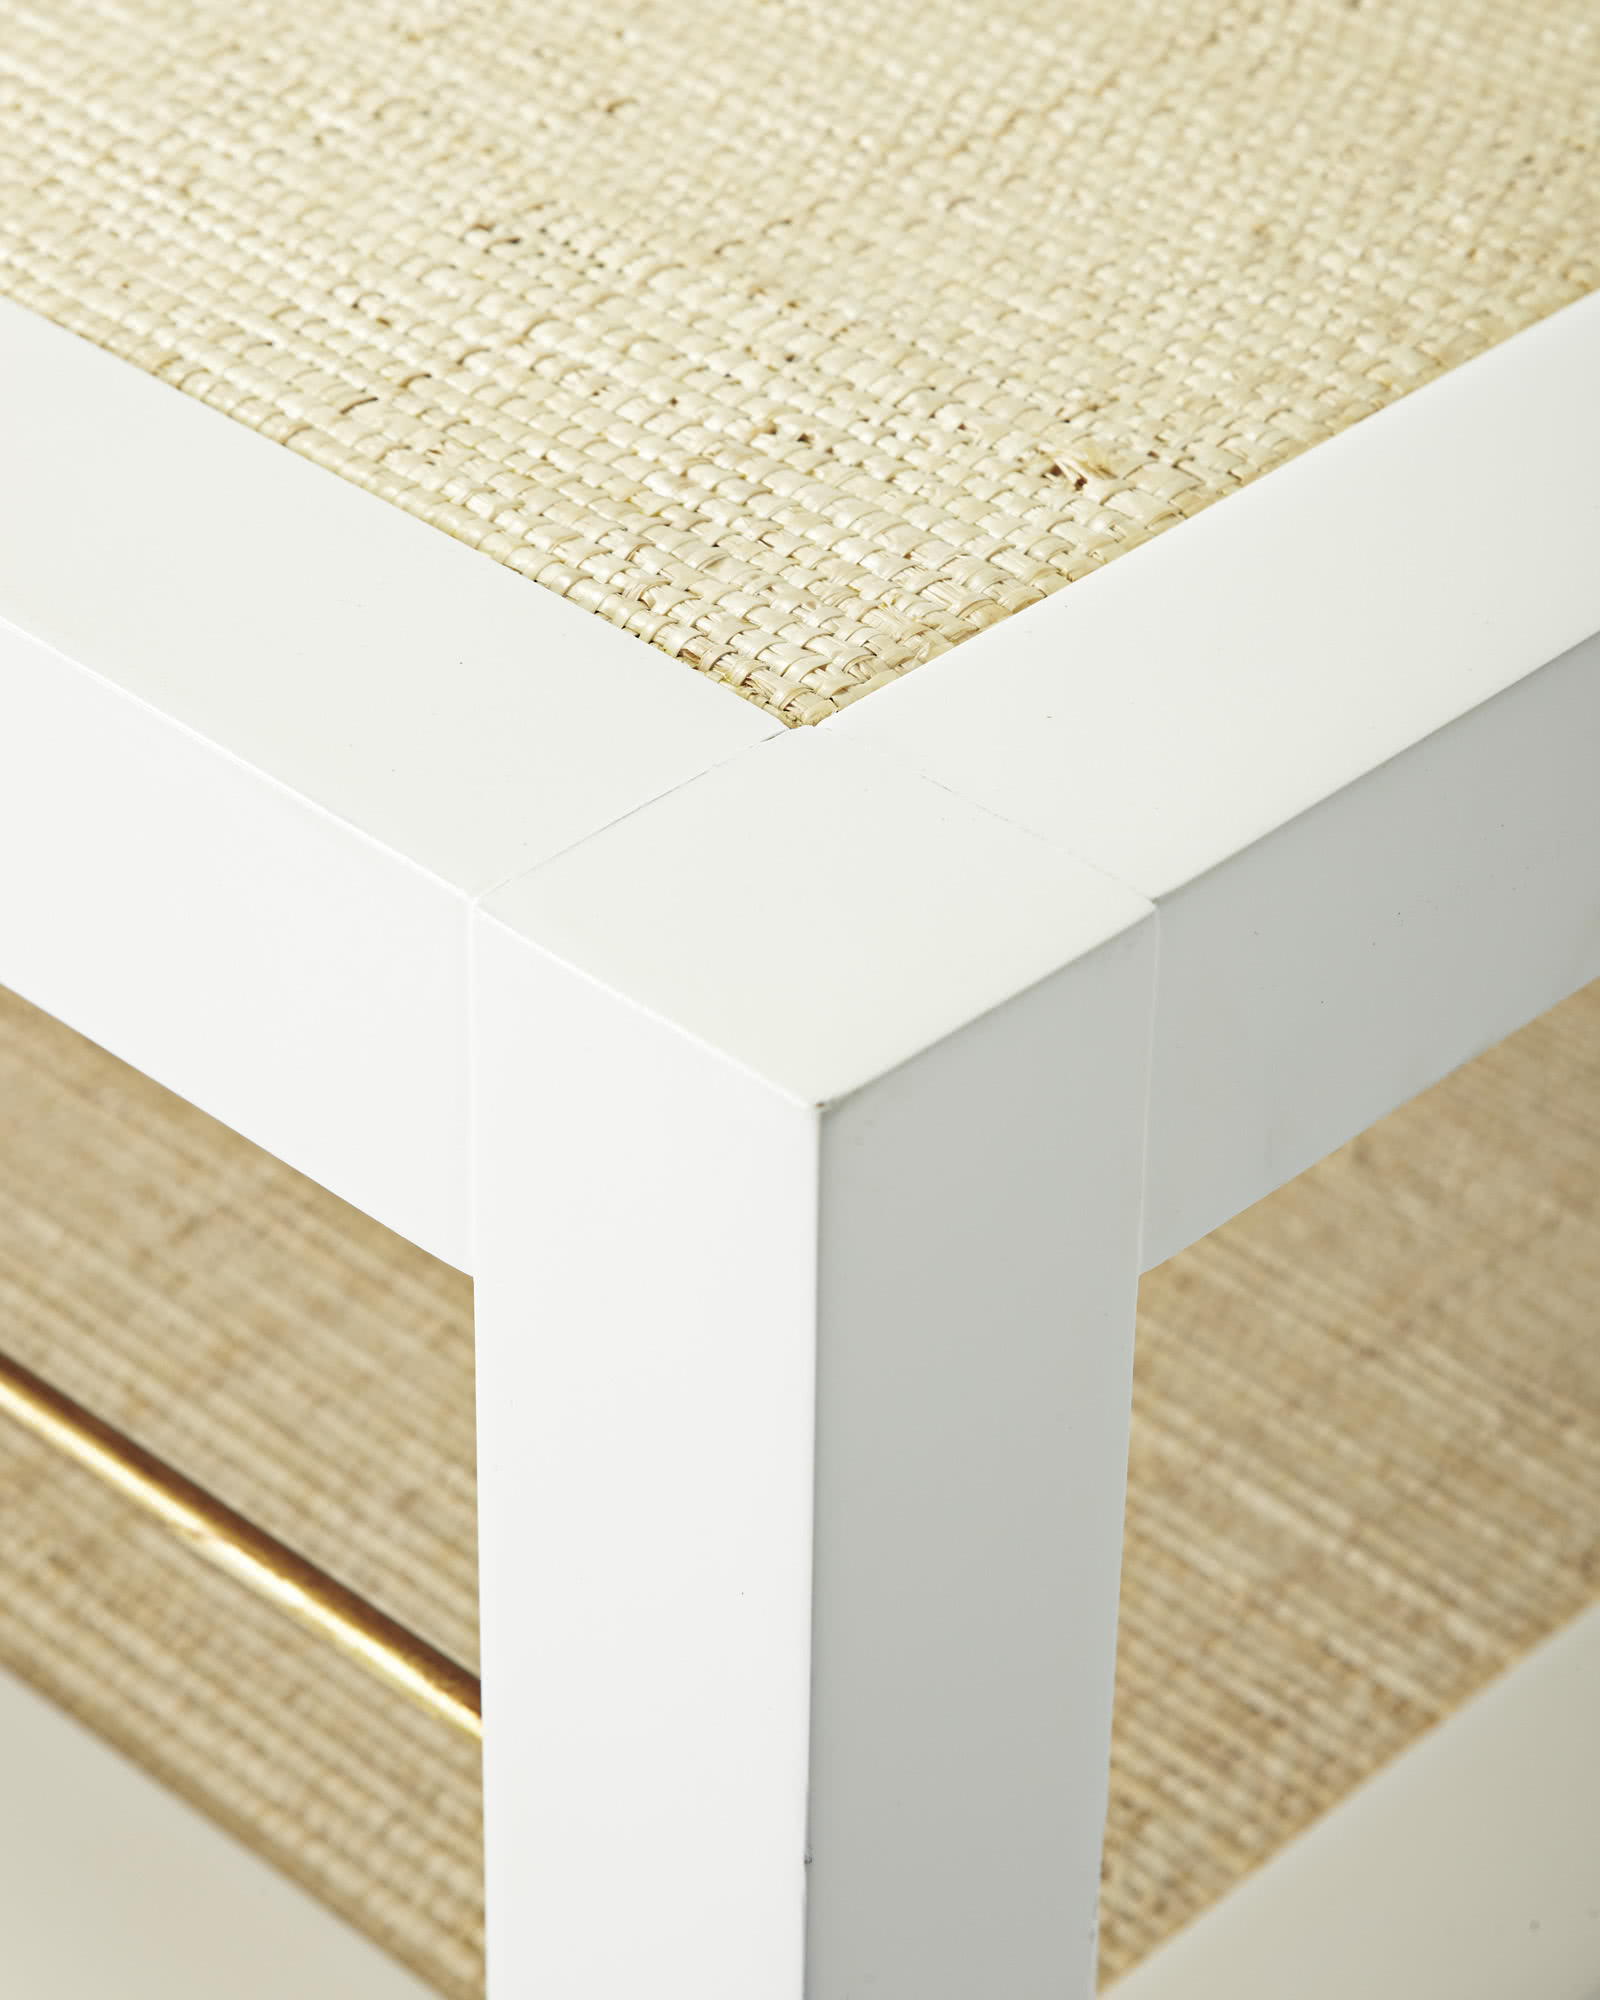 Cabot Square Coffee Table